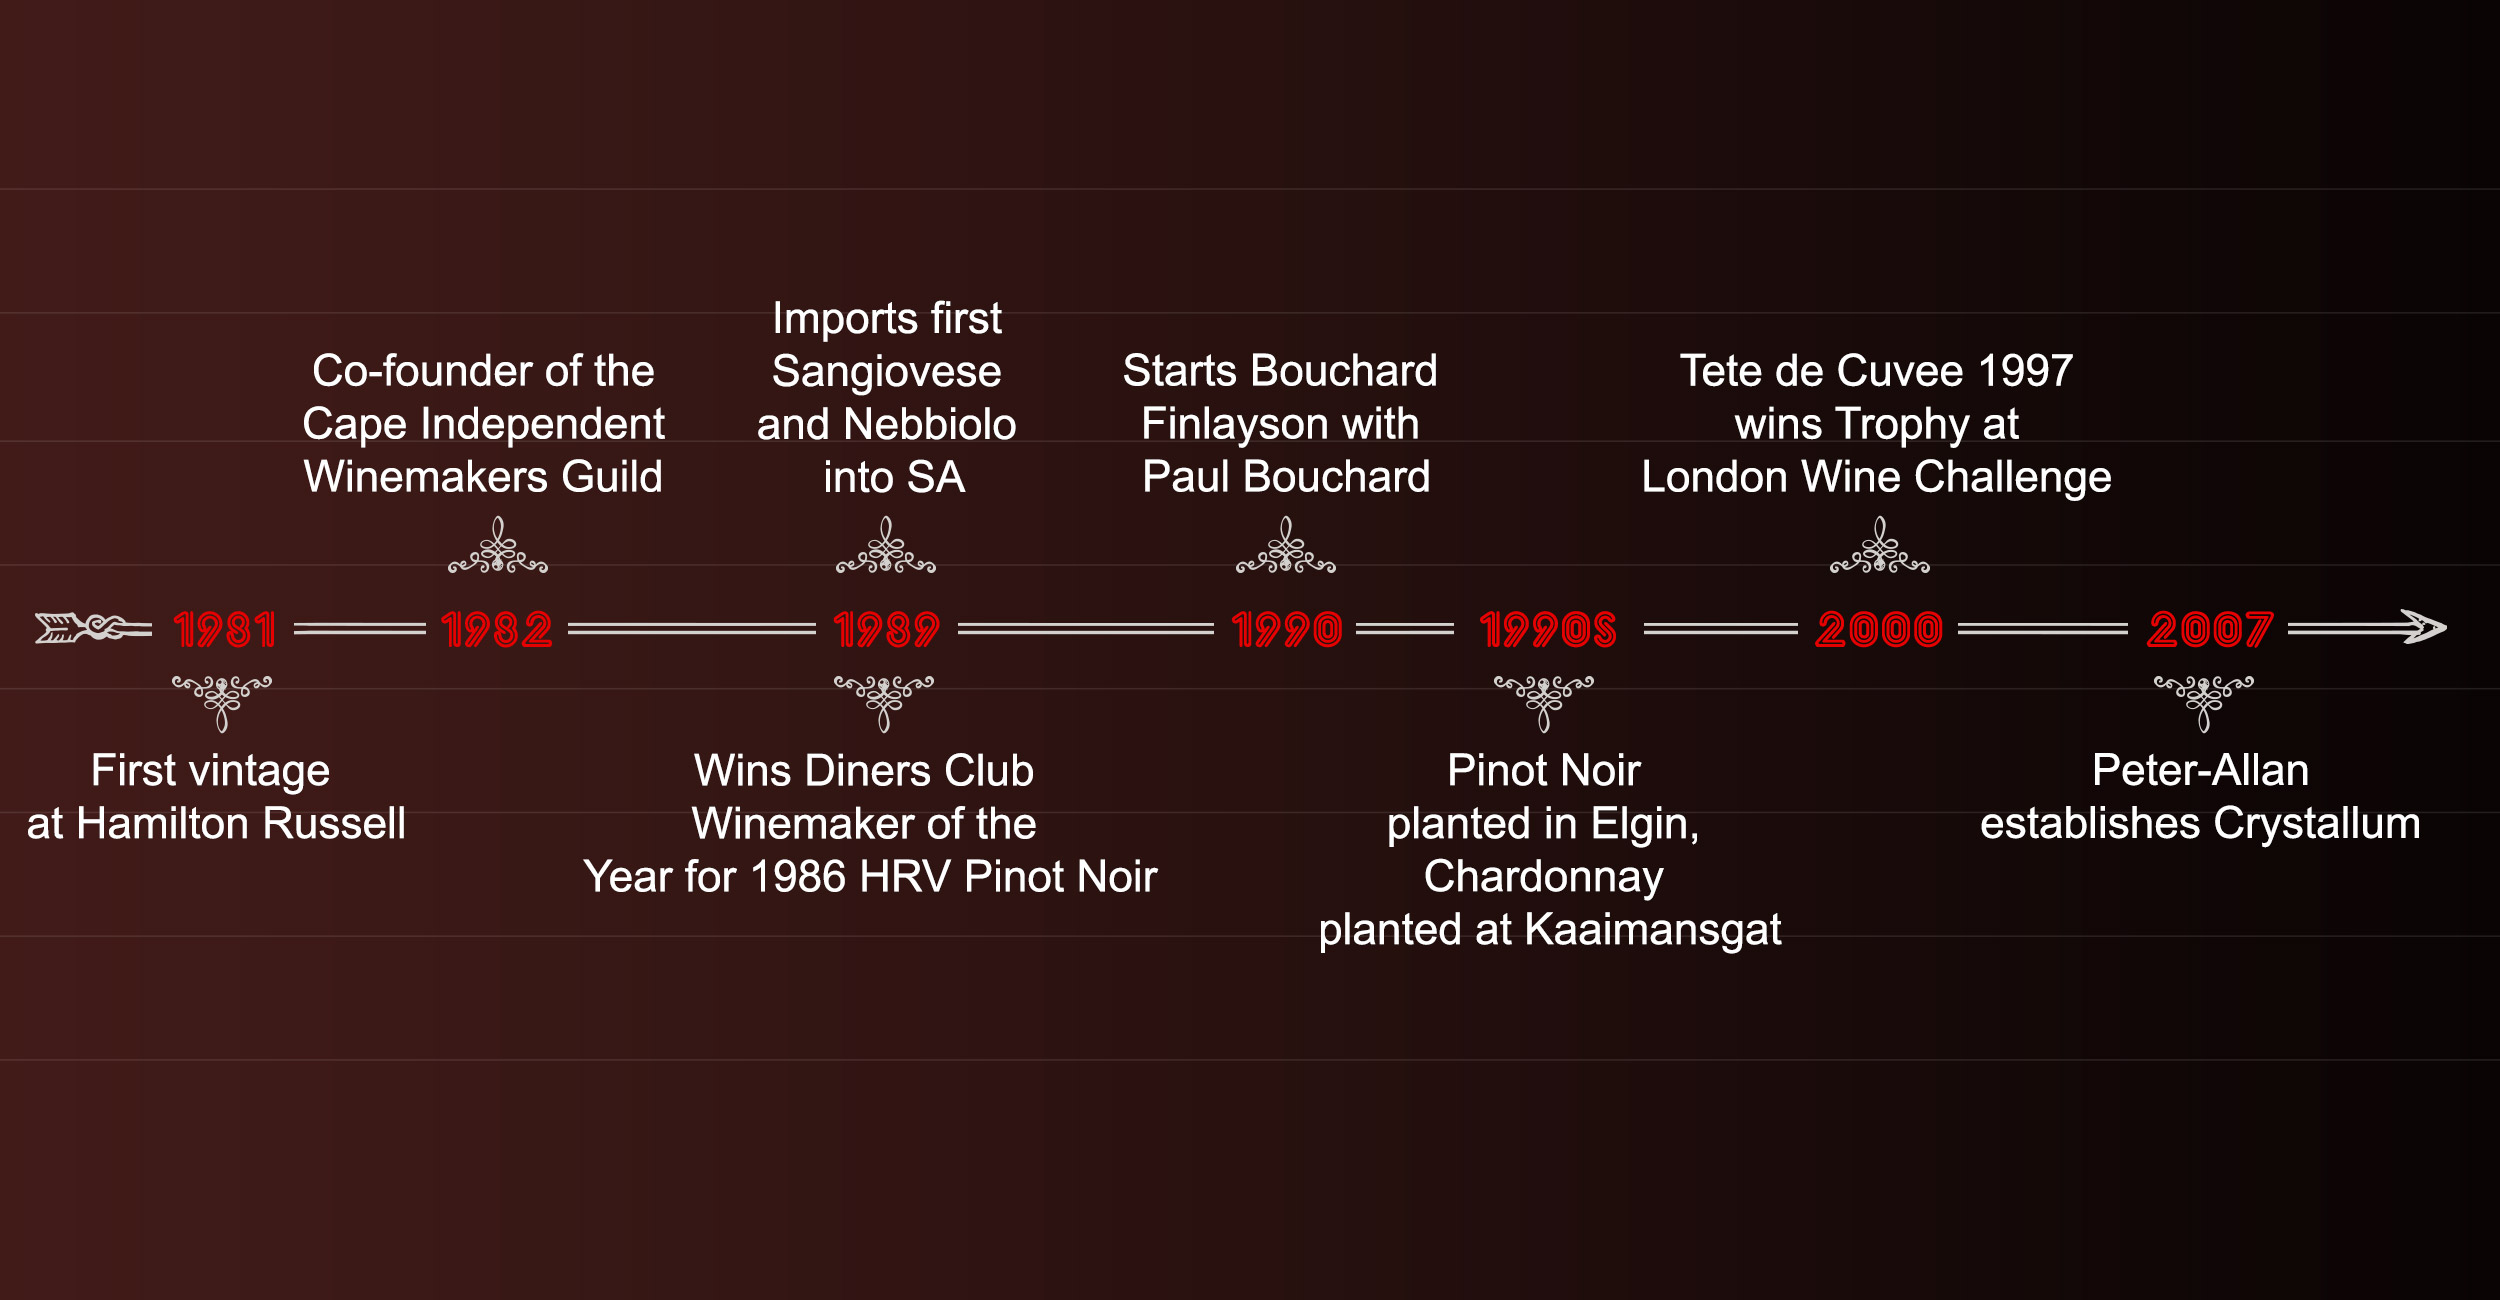 timeline for PowerPoint presentation